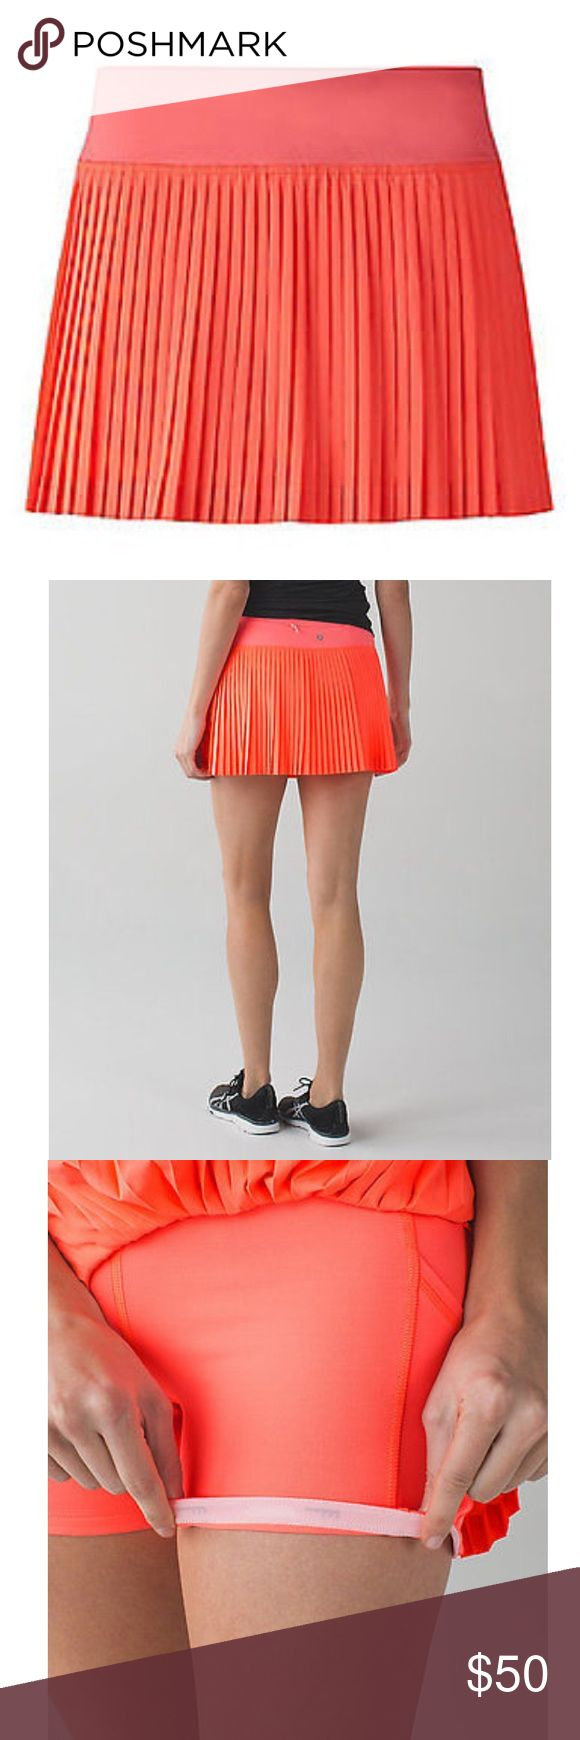 Lululemon orange pleated skirt size 8 Lululemon skort with compression shorts size 8 reg   In good pre loved condition. Stitching In tack. lululemon athletica Skirts